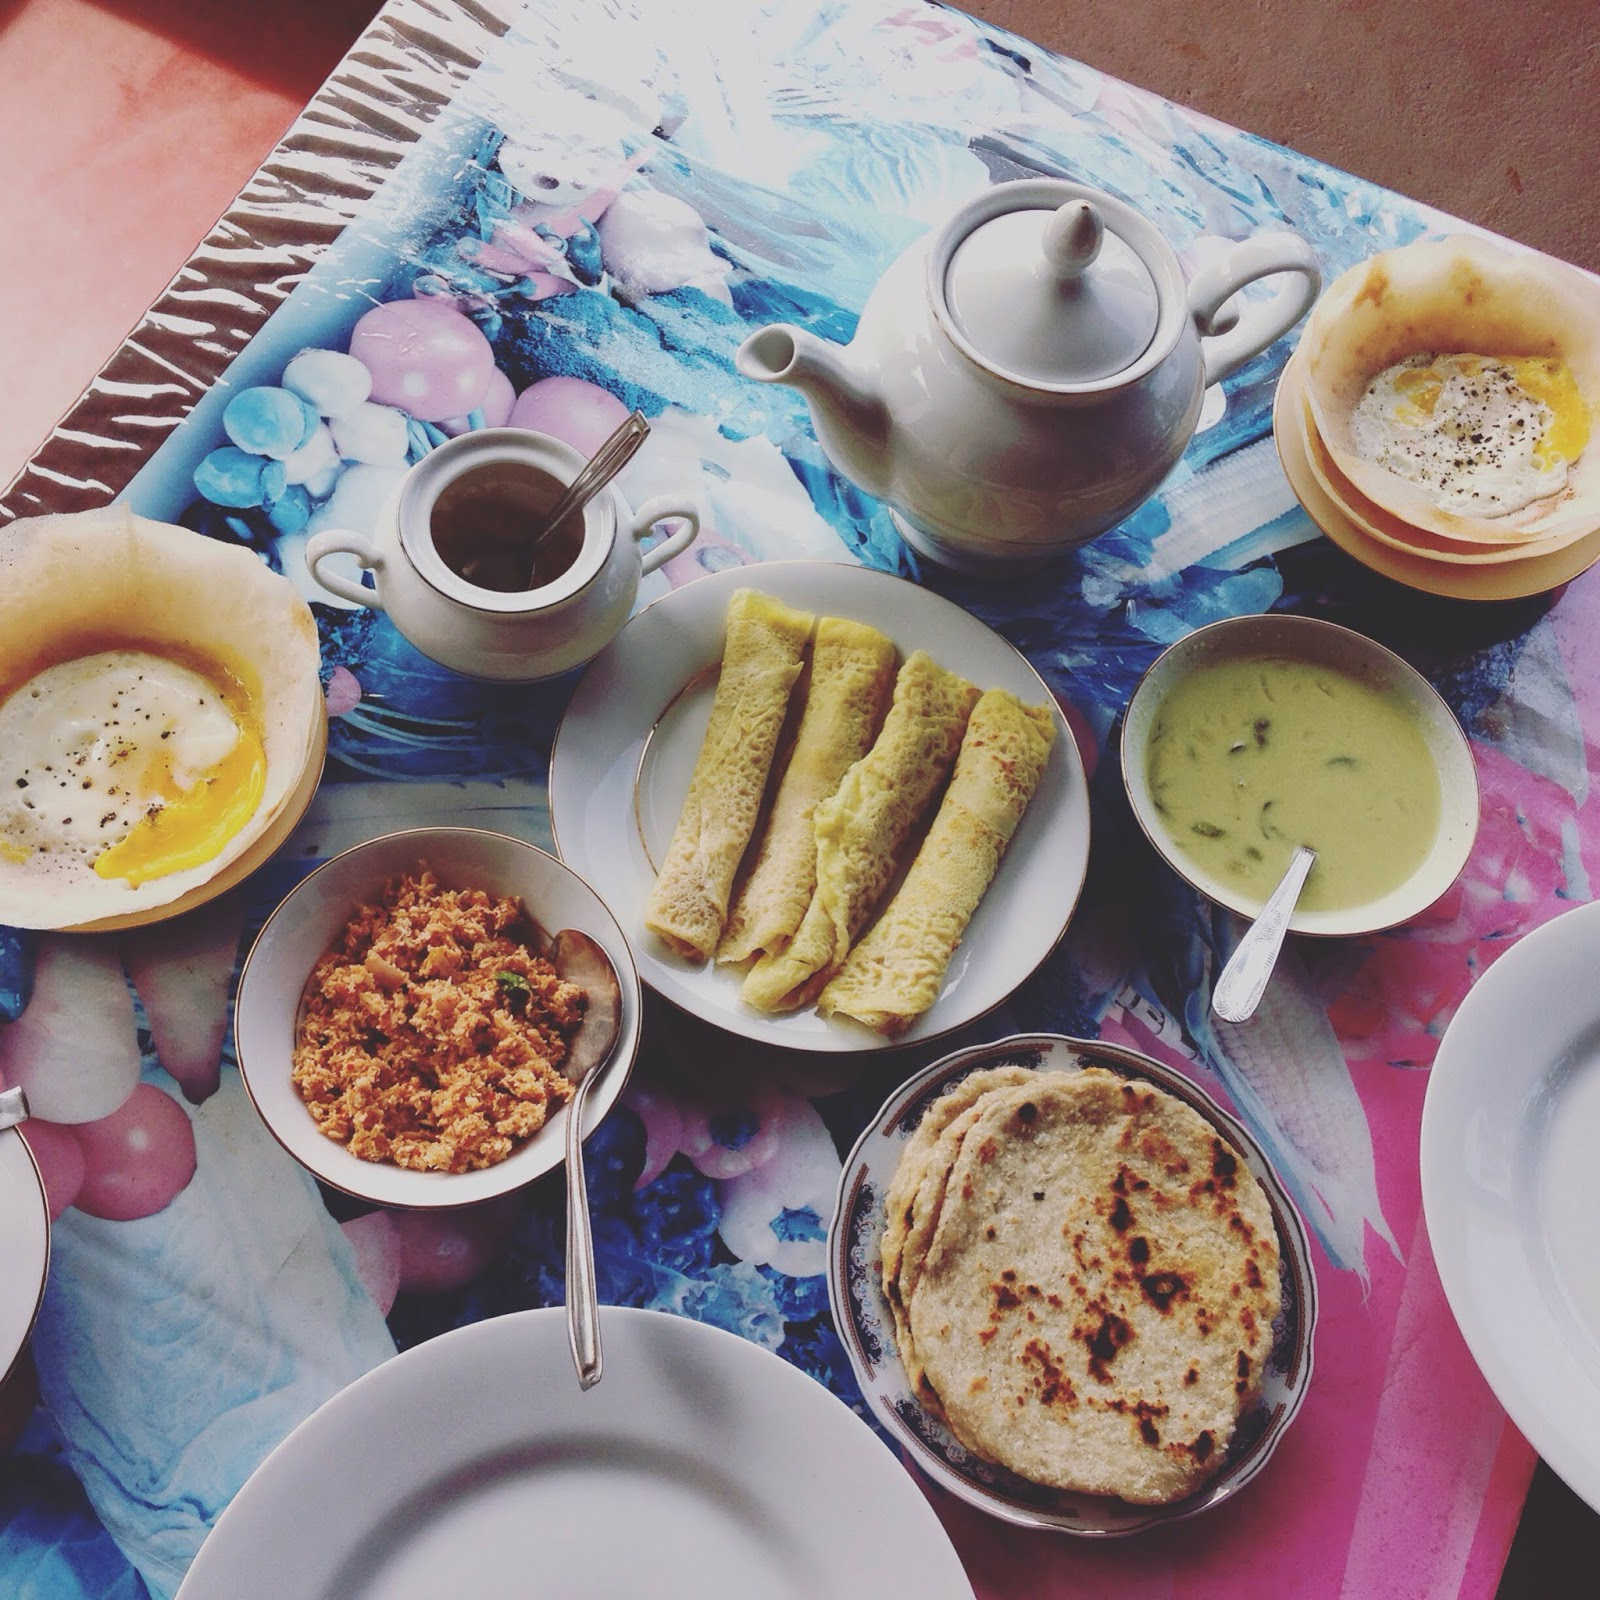 Breakfast in Sri Lanka